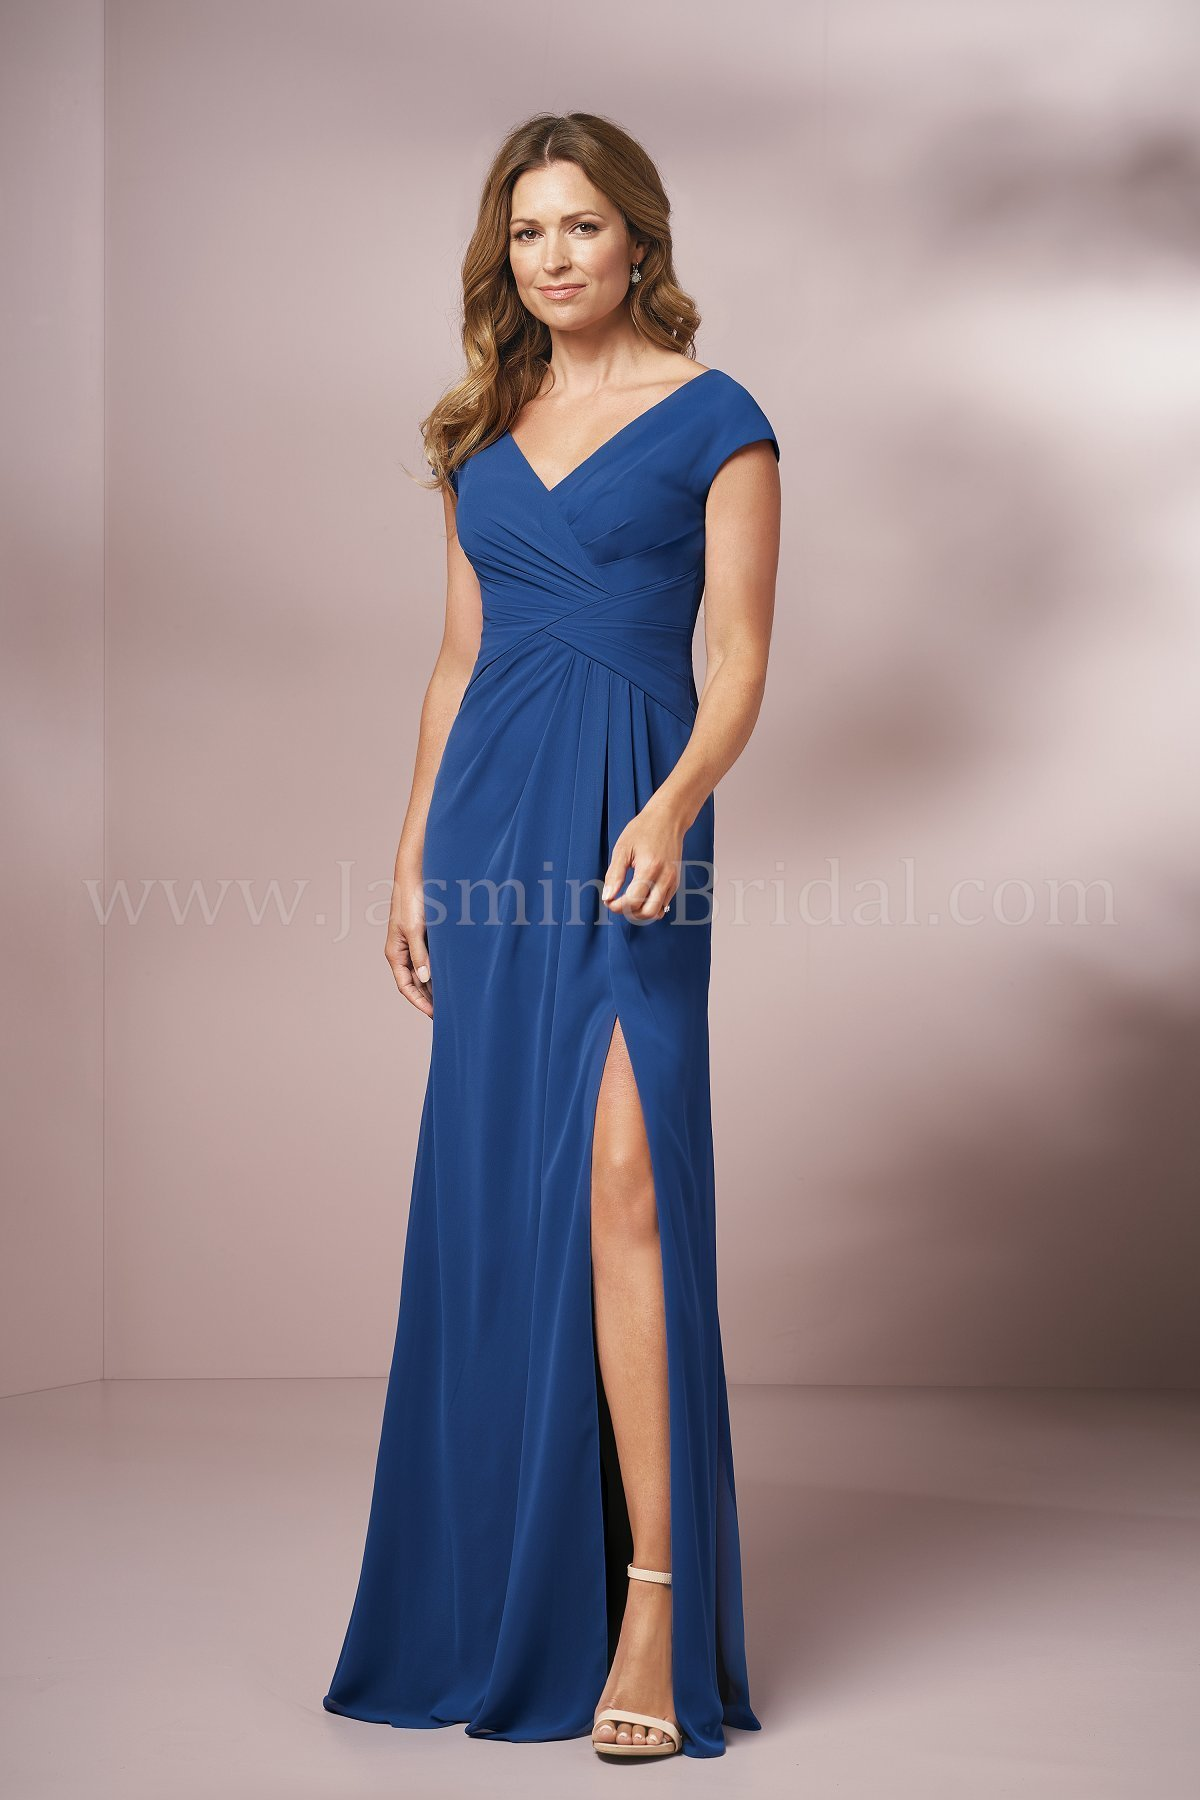 mother-of-the-bride-dresses-J205001-F